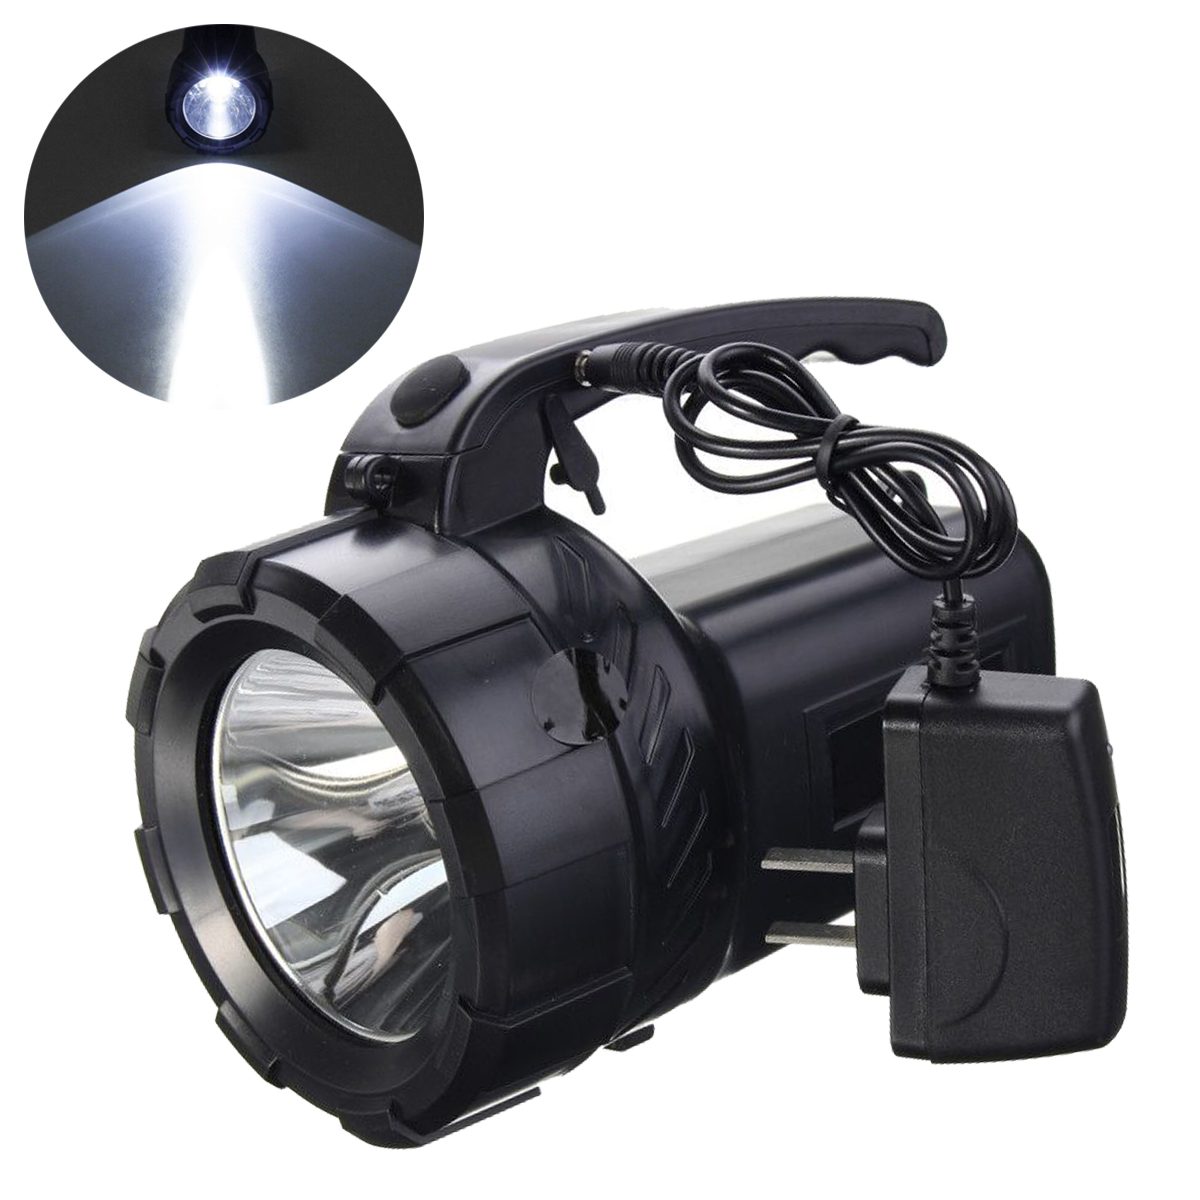 High Power Portable Spotlight Lantern Searchlight Rechargeable Waterproof Hunting Spotlight Torch Work Light Camping Hiking high power portable spotlight lantern searchlight rechargeable waterproof hunting spotlight built in battery